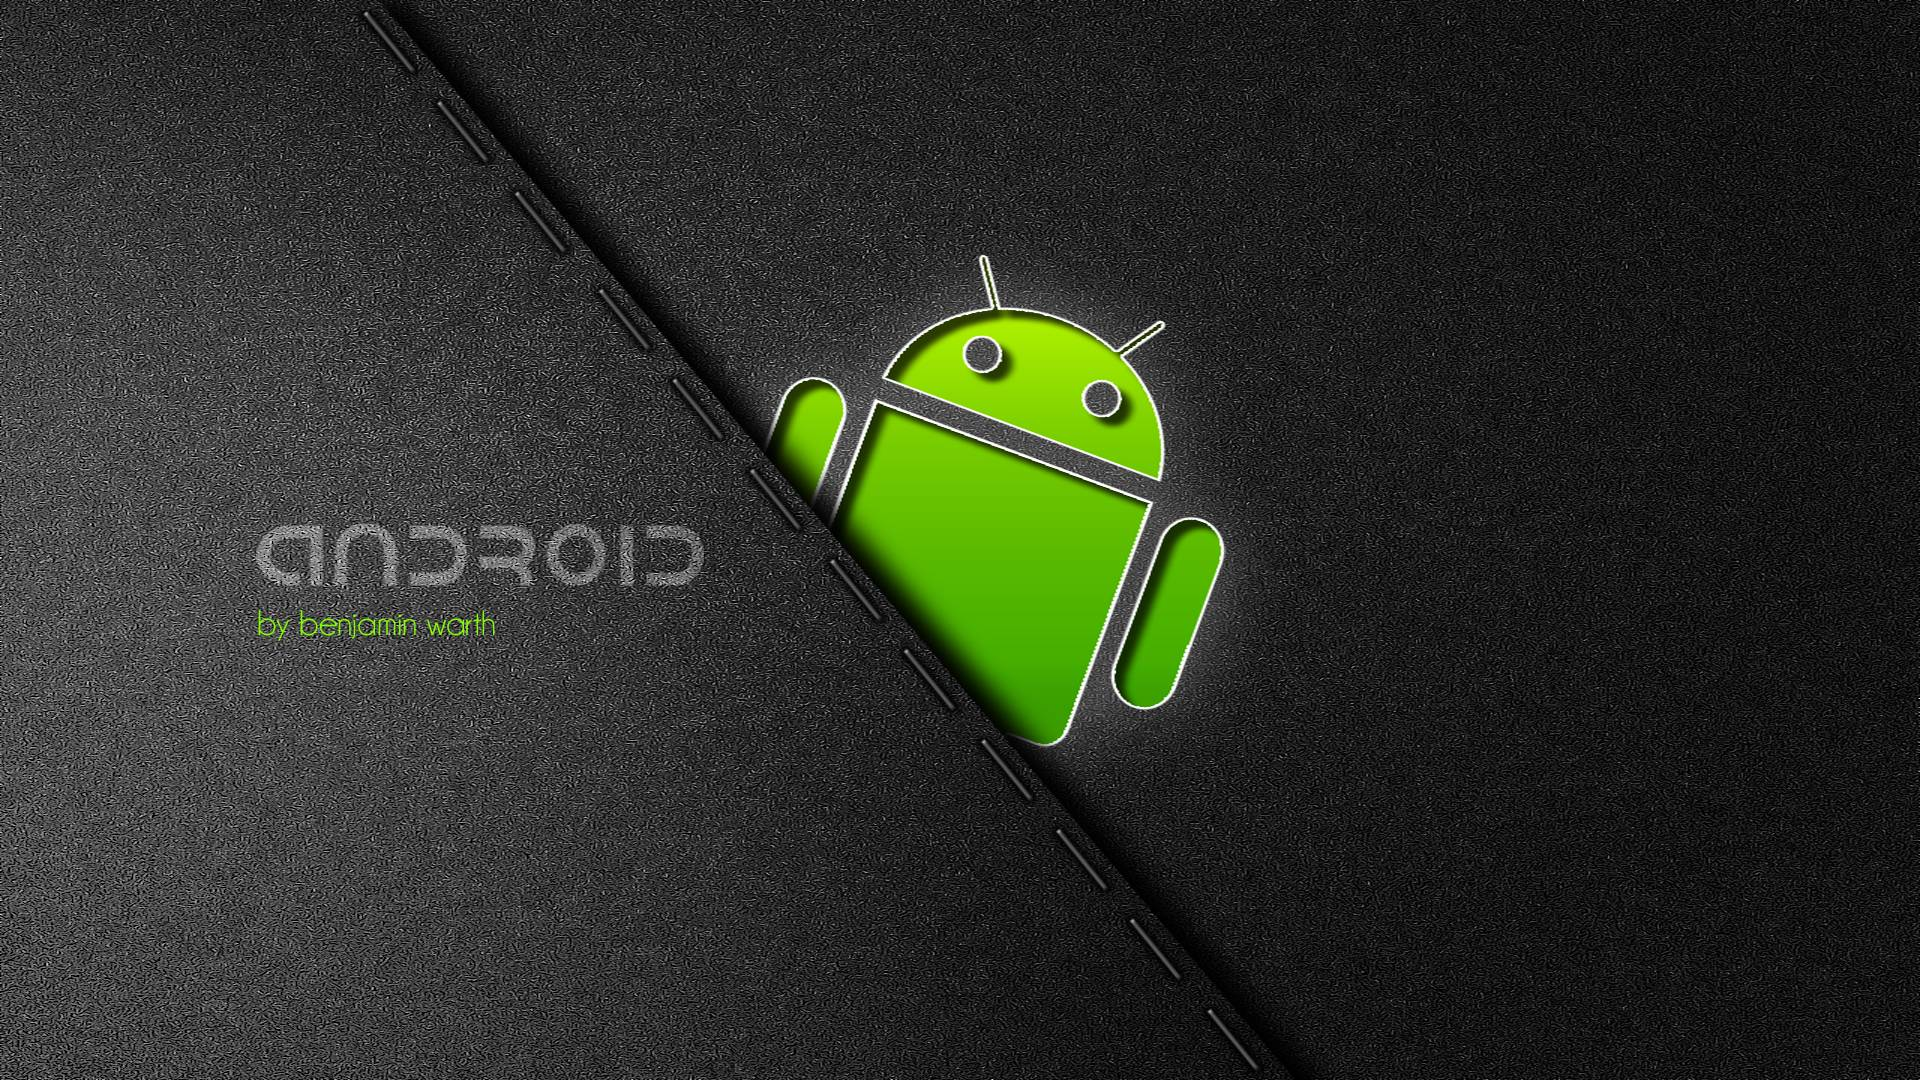 android 05 hd wallpaper for desktop free wallpapers for androids